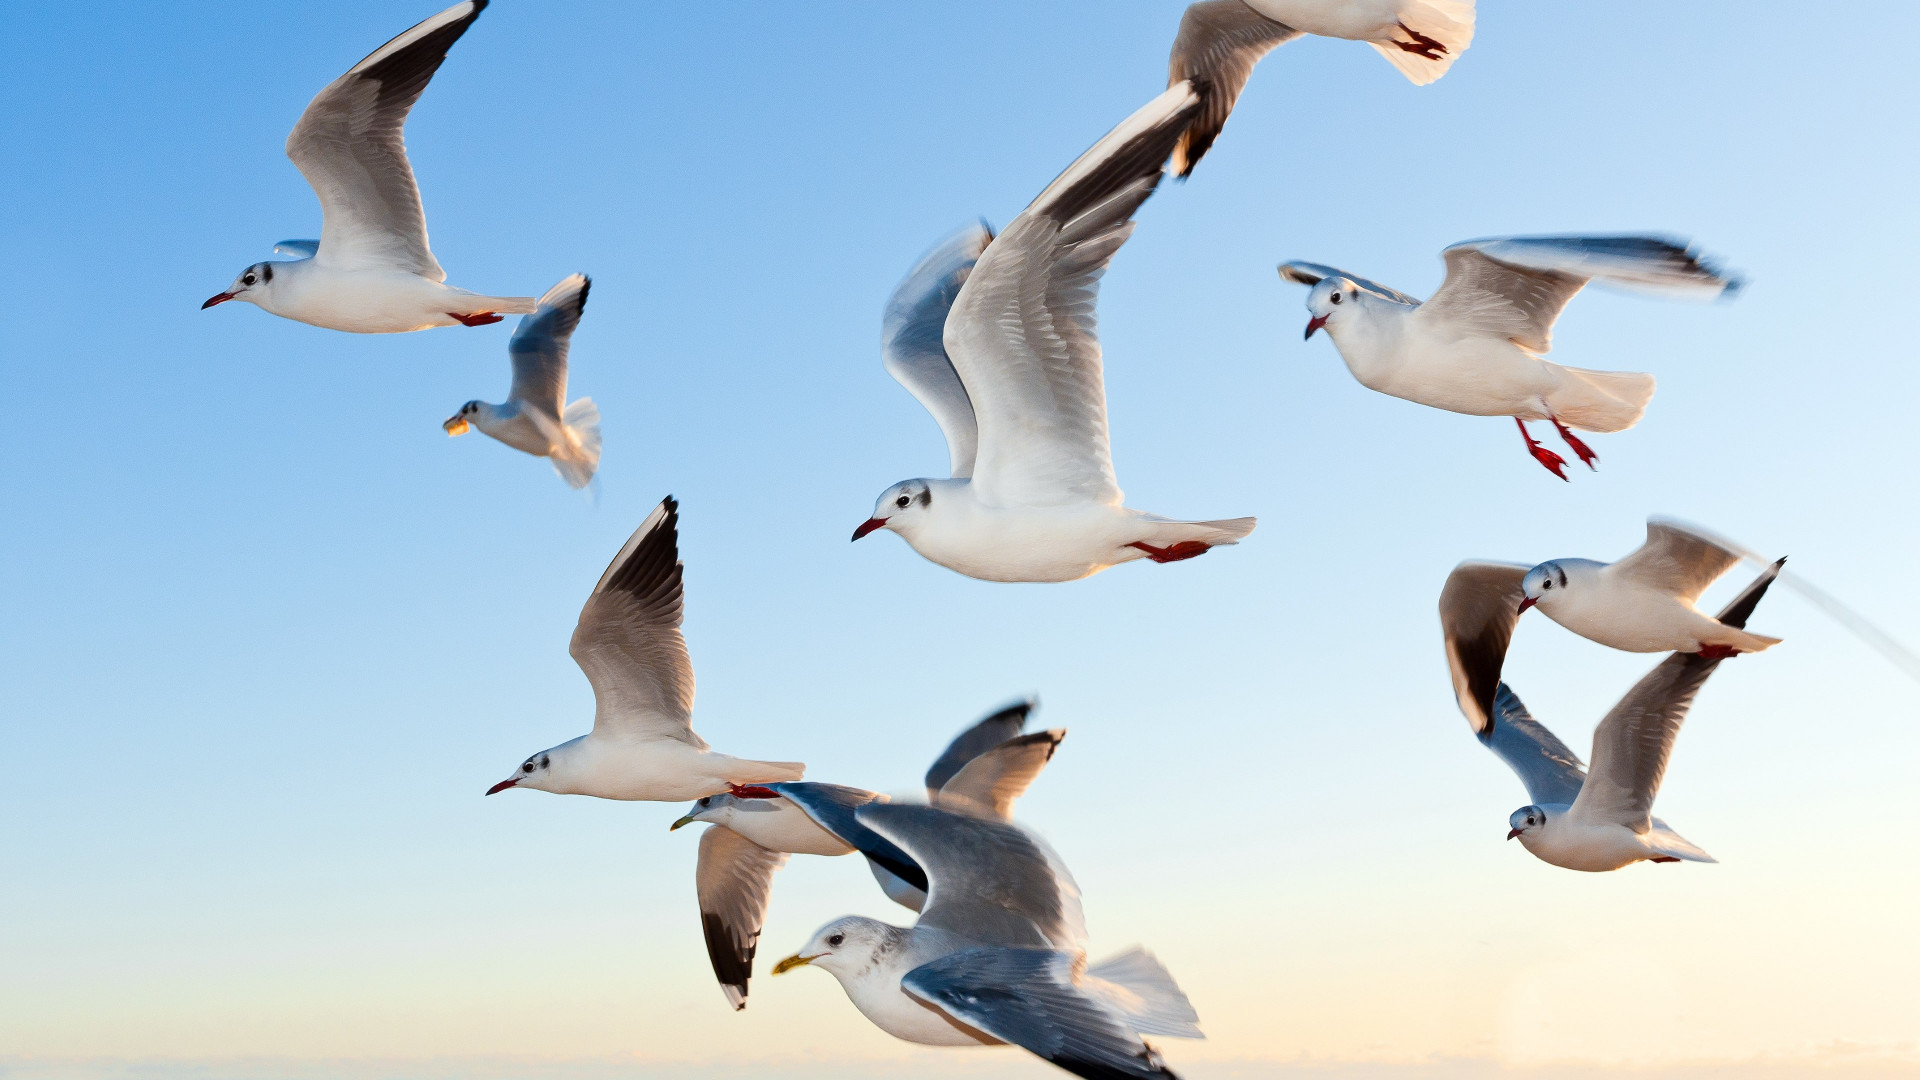 Seagulls | 1920x1080 wallpaper